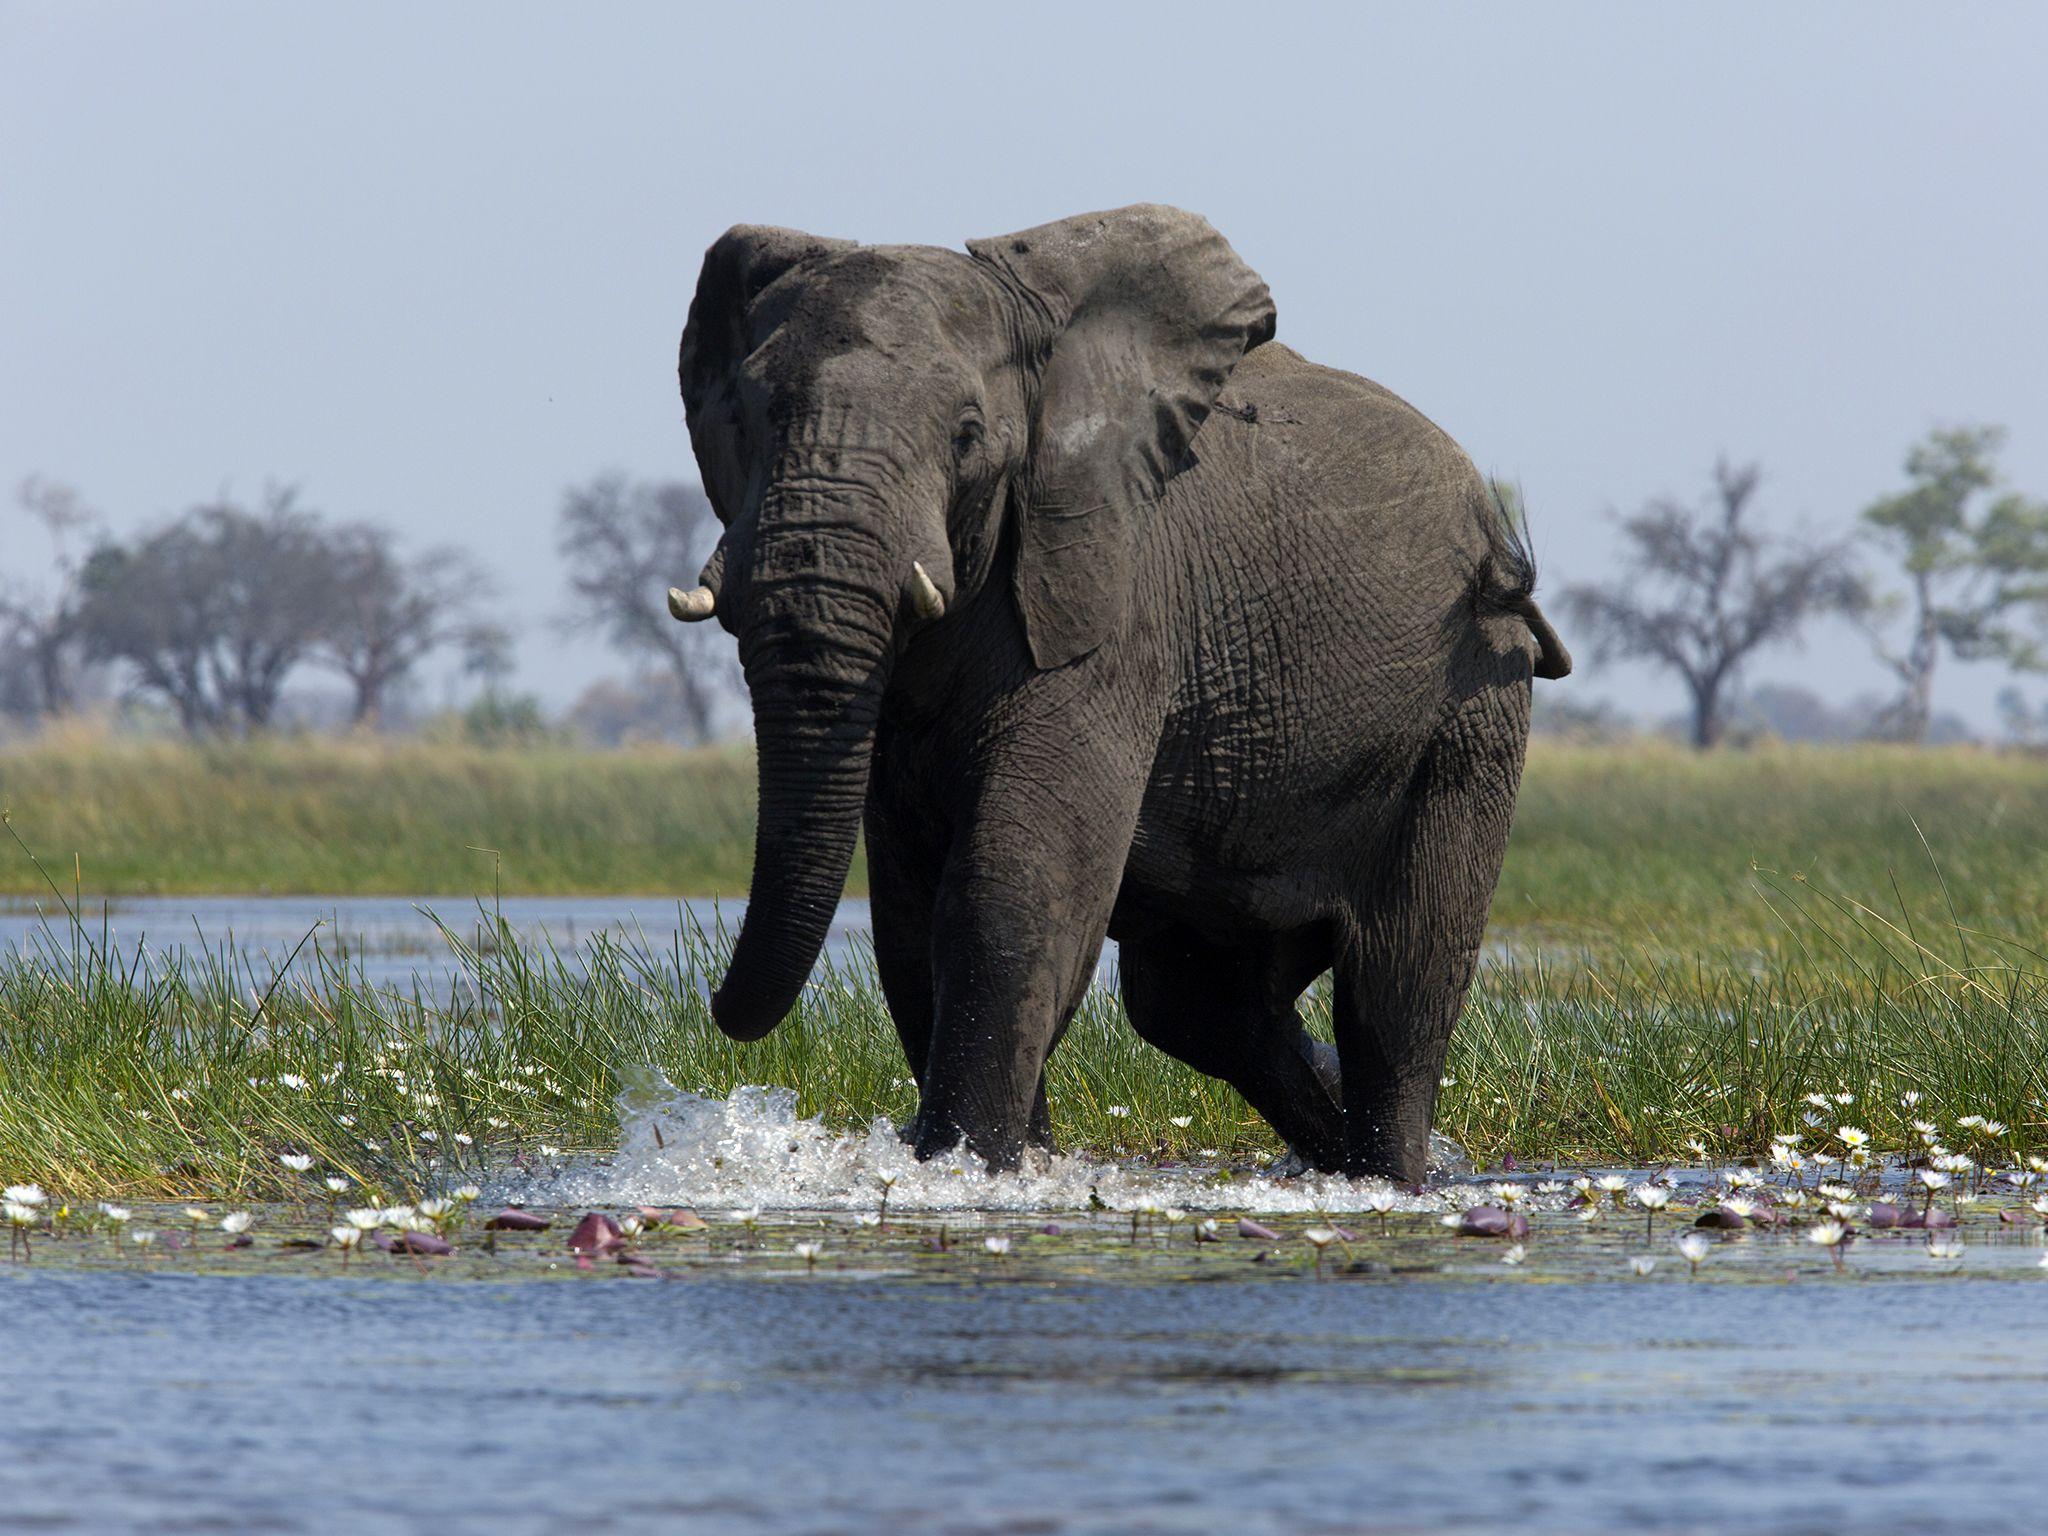 Botswana: Elephant walking into water, spotted on a river safari. This image is from Safari... [Photo of the day - September 2016]